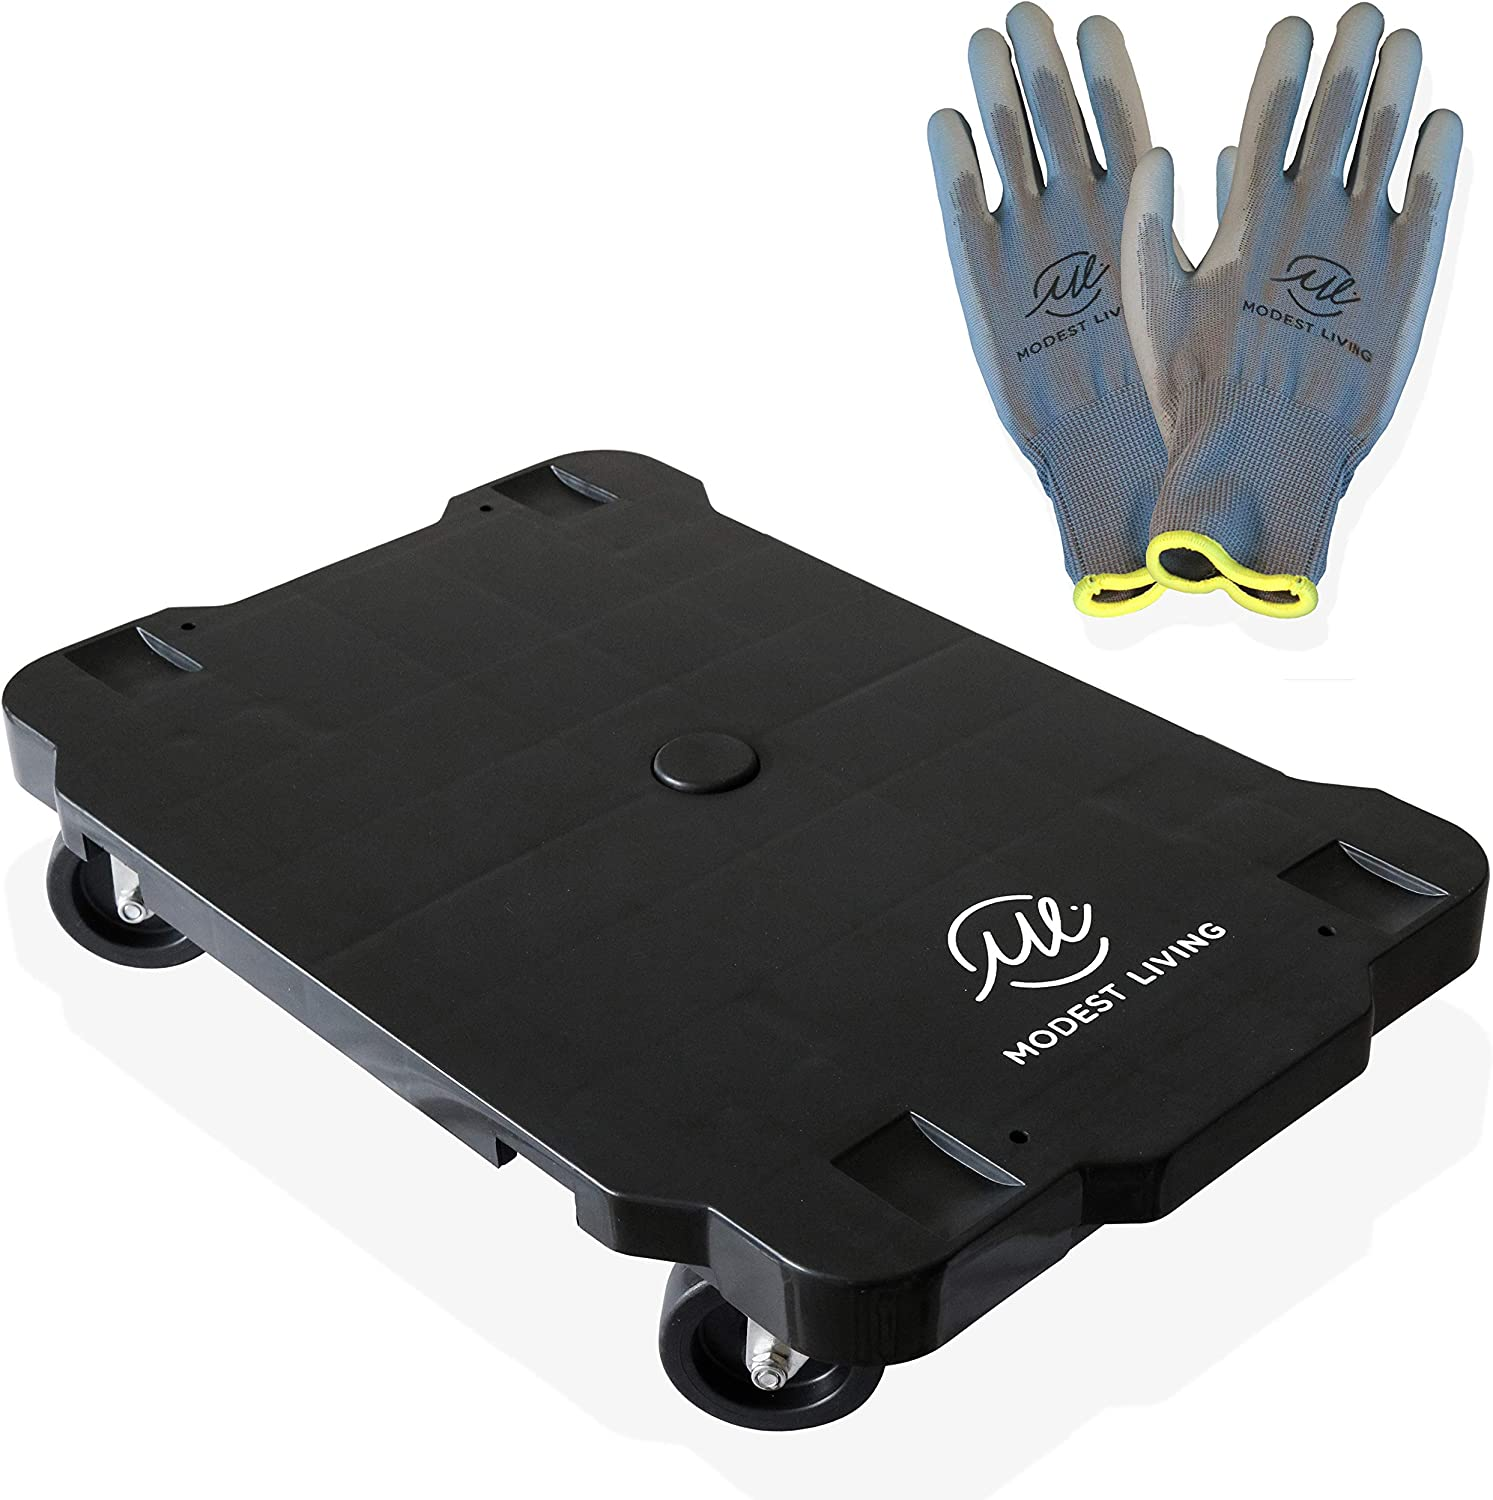 Movers Dolly Furniture Moving Trolley Interlocking with 4 Heavy Duty Swivelling Rubber Caster Wheels (16.5 x 11.2 x 4 inches) - Complete with Multipurpose Large Gardening Gloves